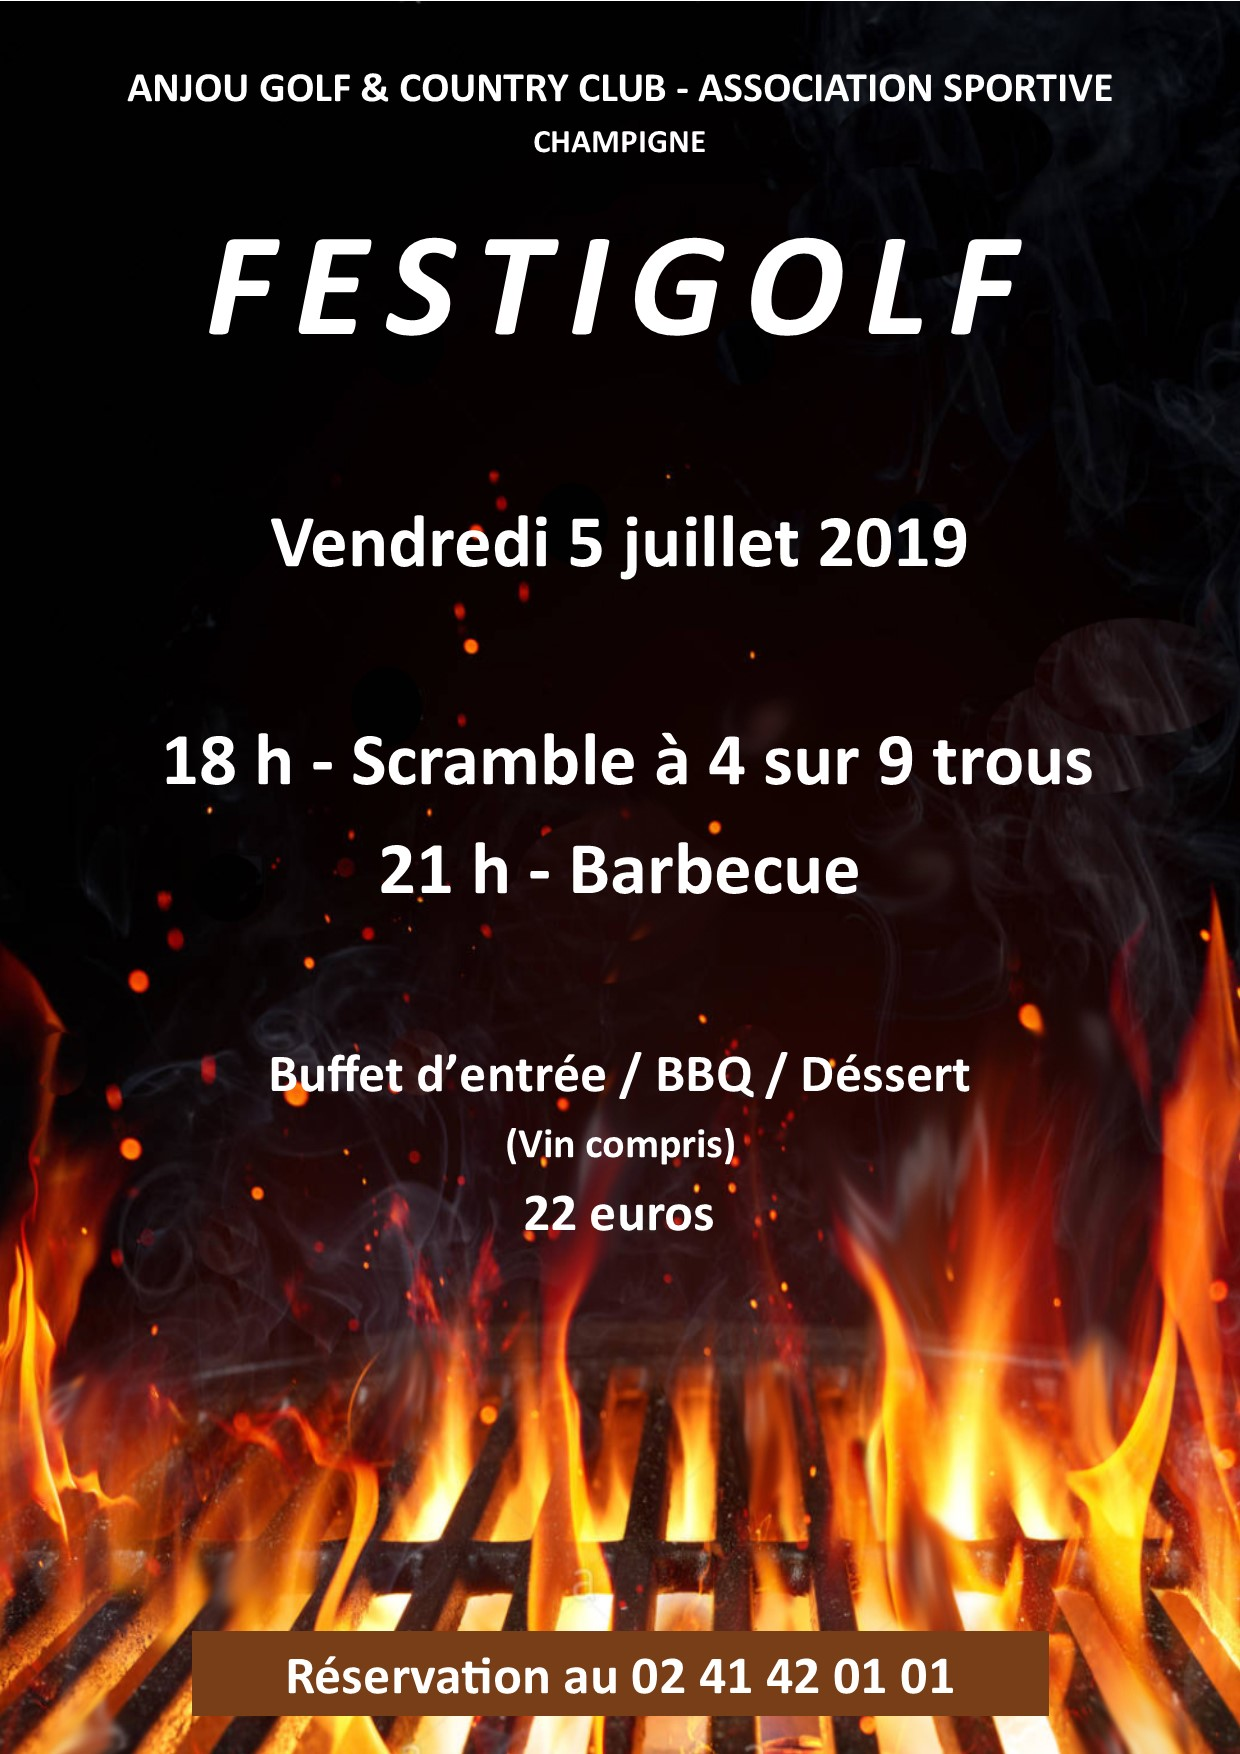 Festigolf information Anjou Golf